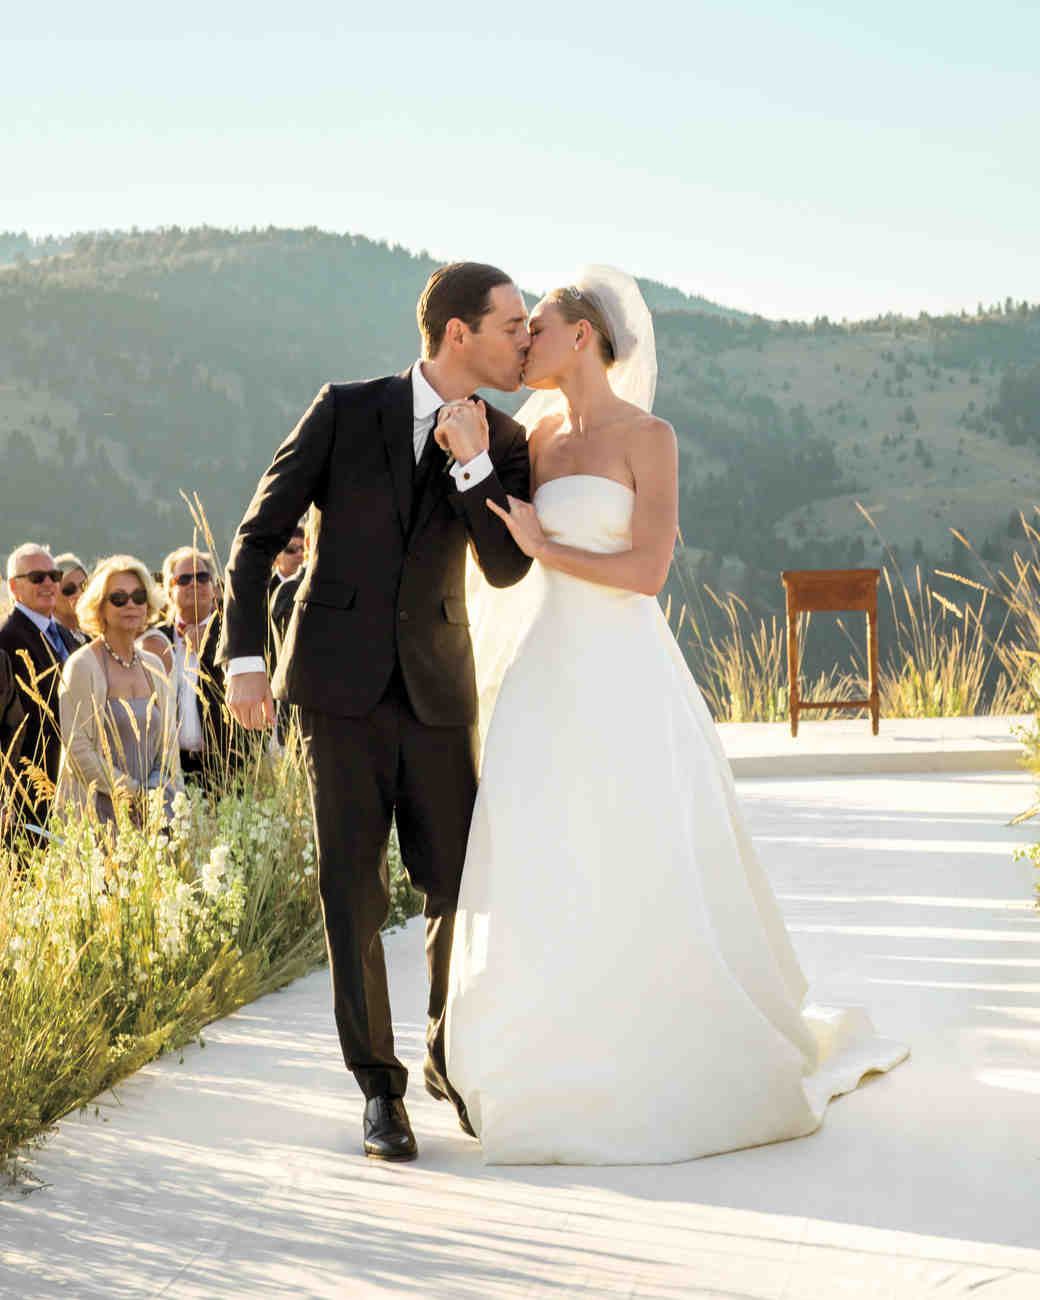 ?Kate Bosworth and husband Michael Polish on their wedding